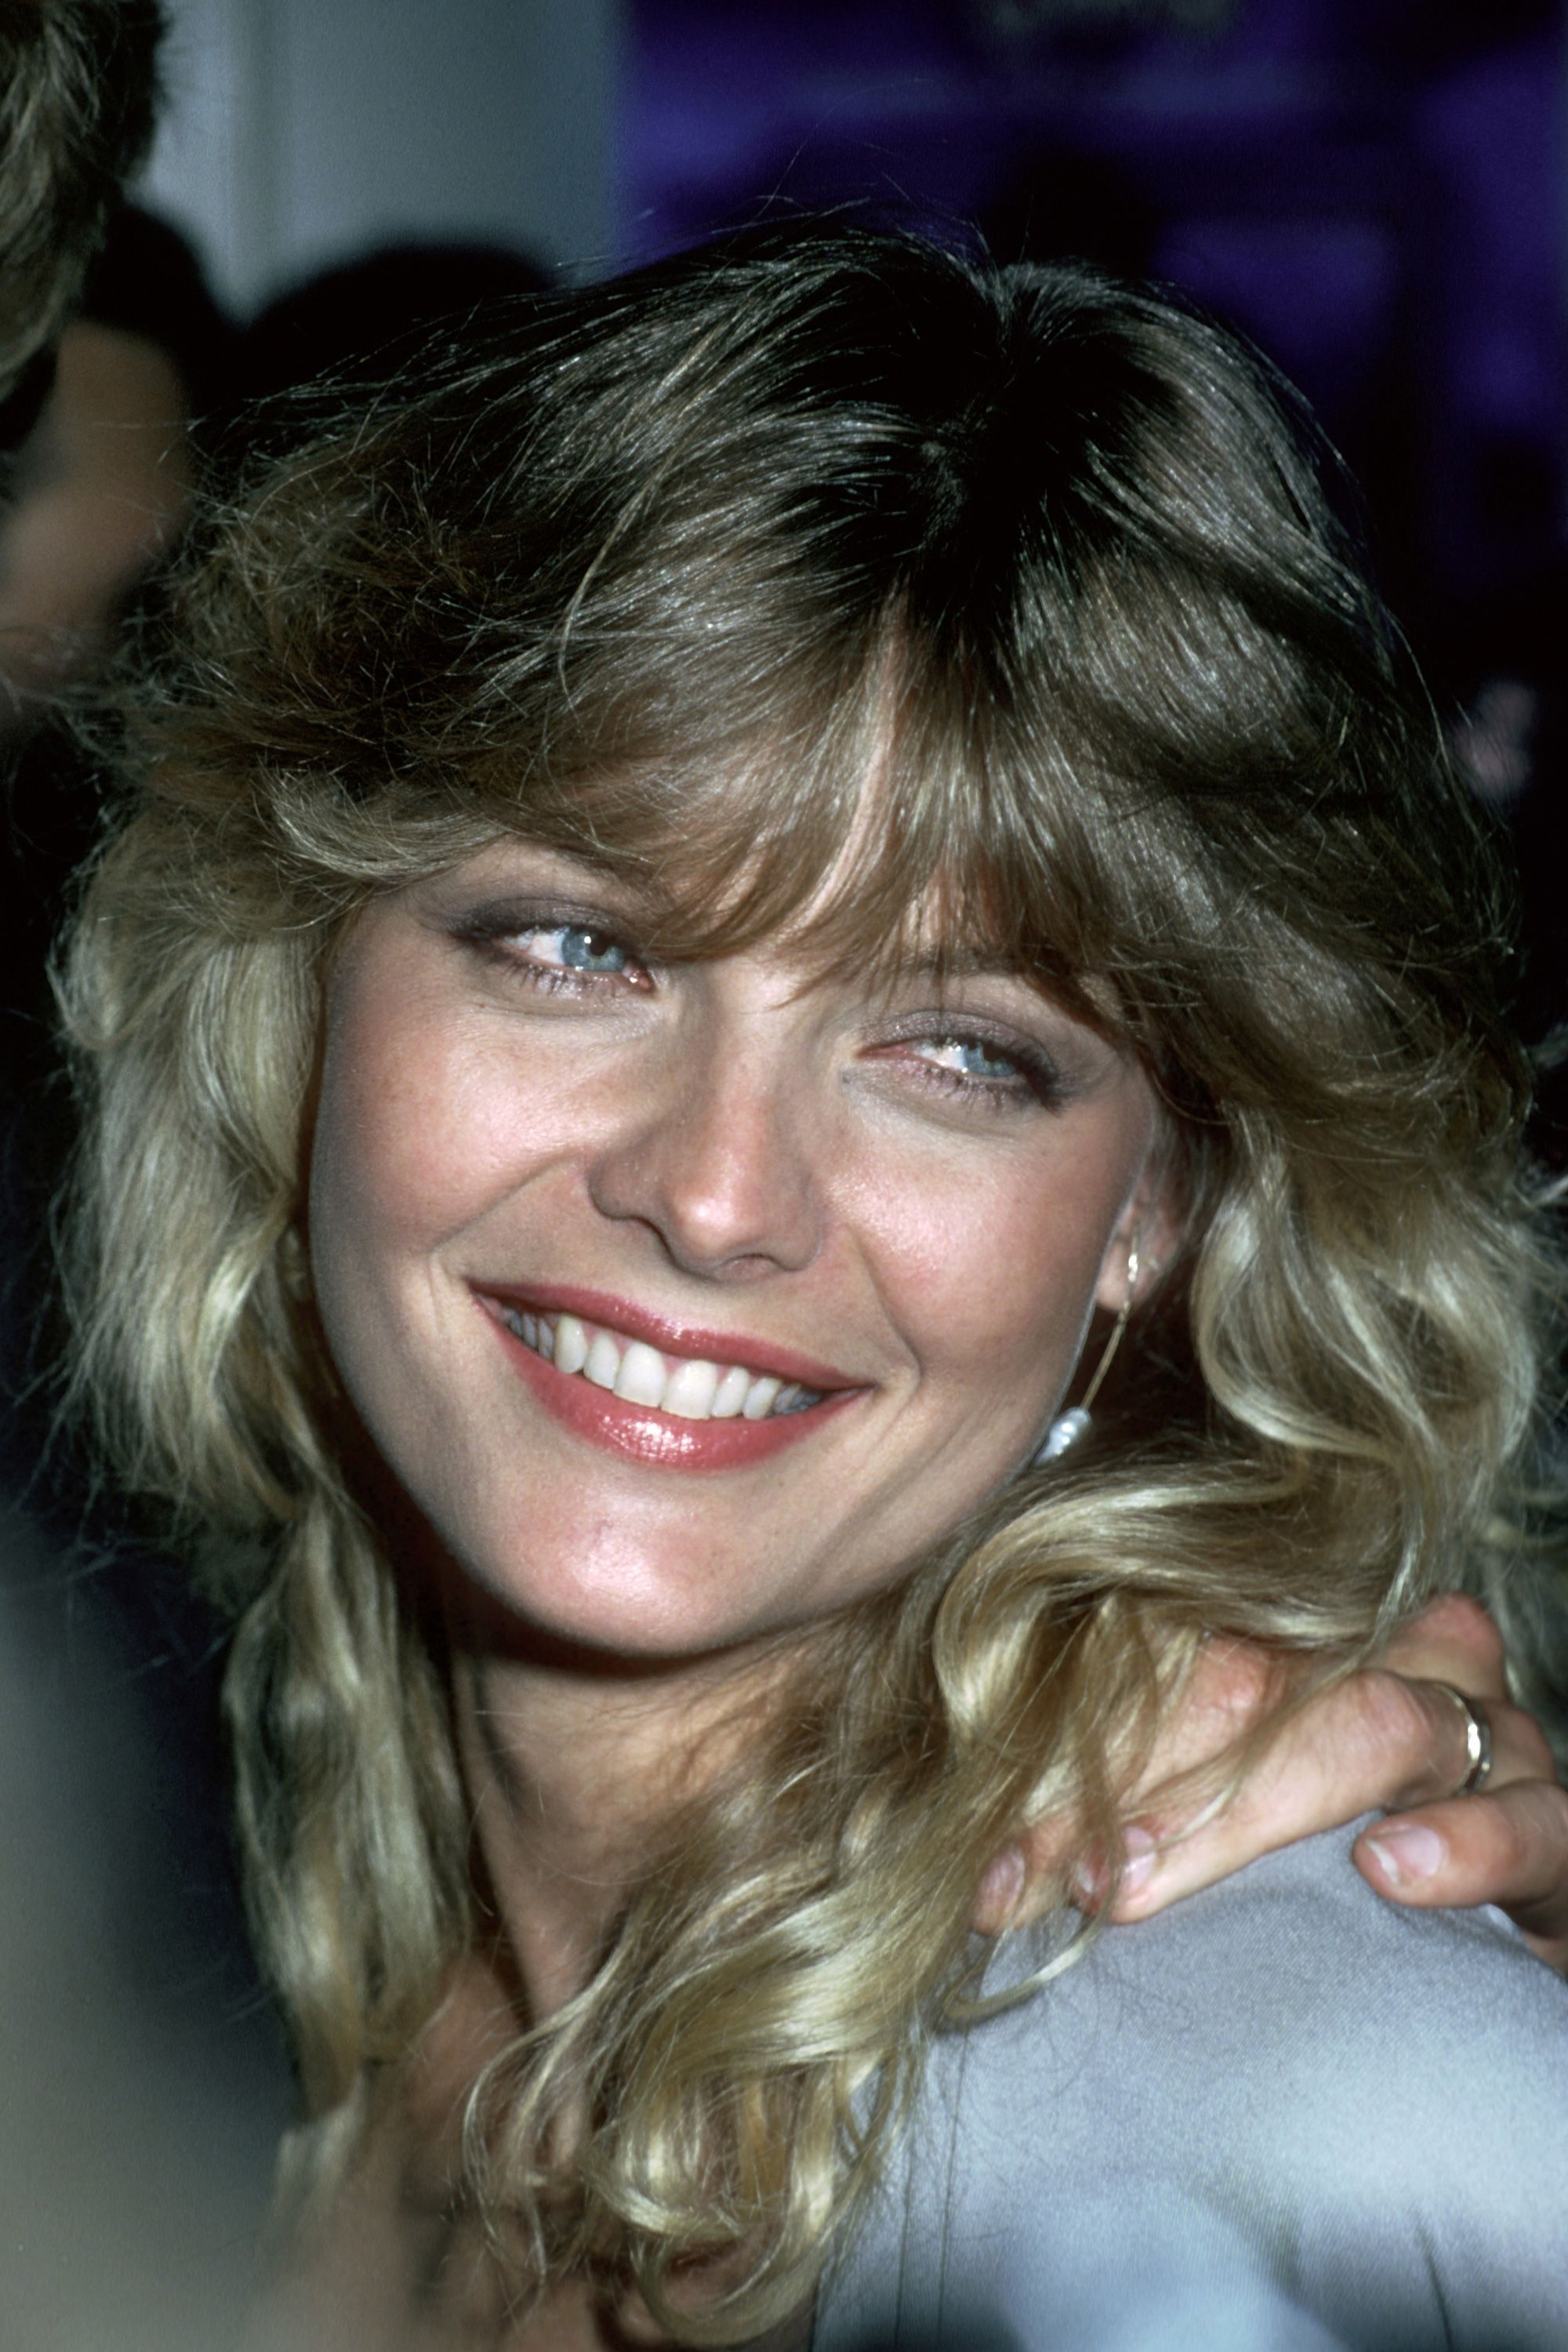 """<p>If Michelle Pfeiffer's layered, fanned-out bangs don't give you serious <em data-redactor-tag=""""em"""">Grease 2 </em>vibes, nothing will. </p>"""